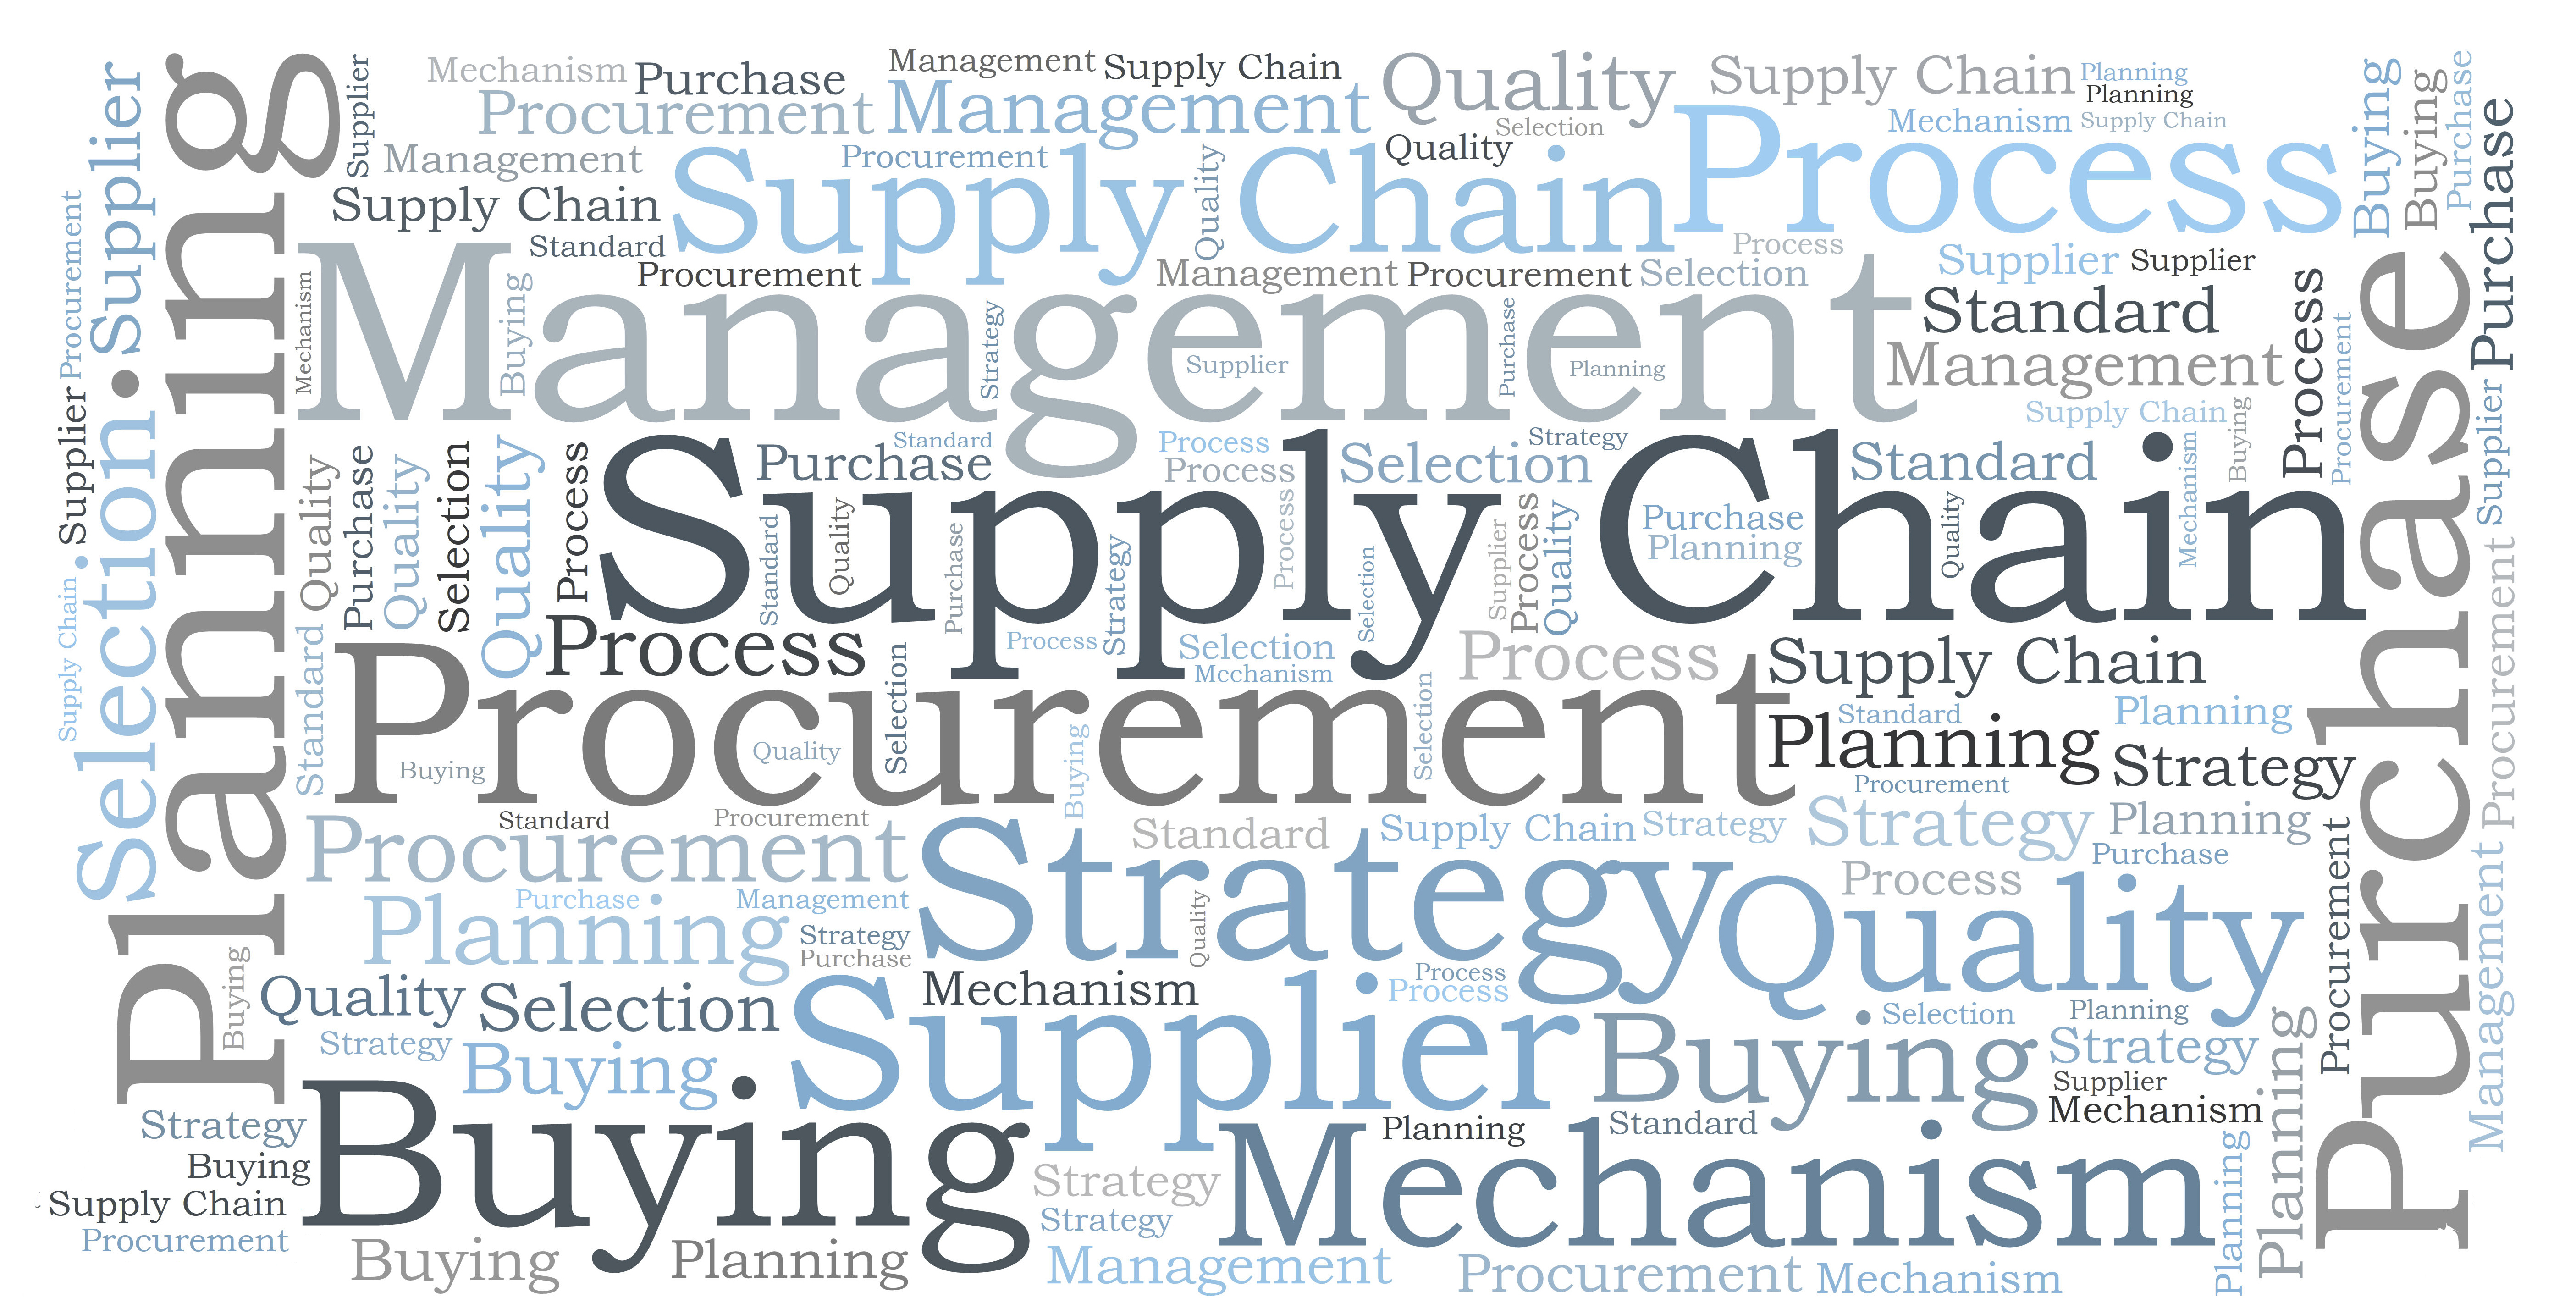 Supply chain and operations management the us approach to supply chain and operations management via apics cpim certification xflitez Gallery